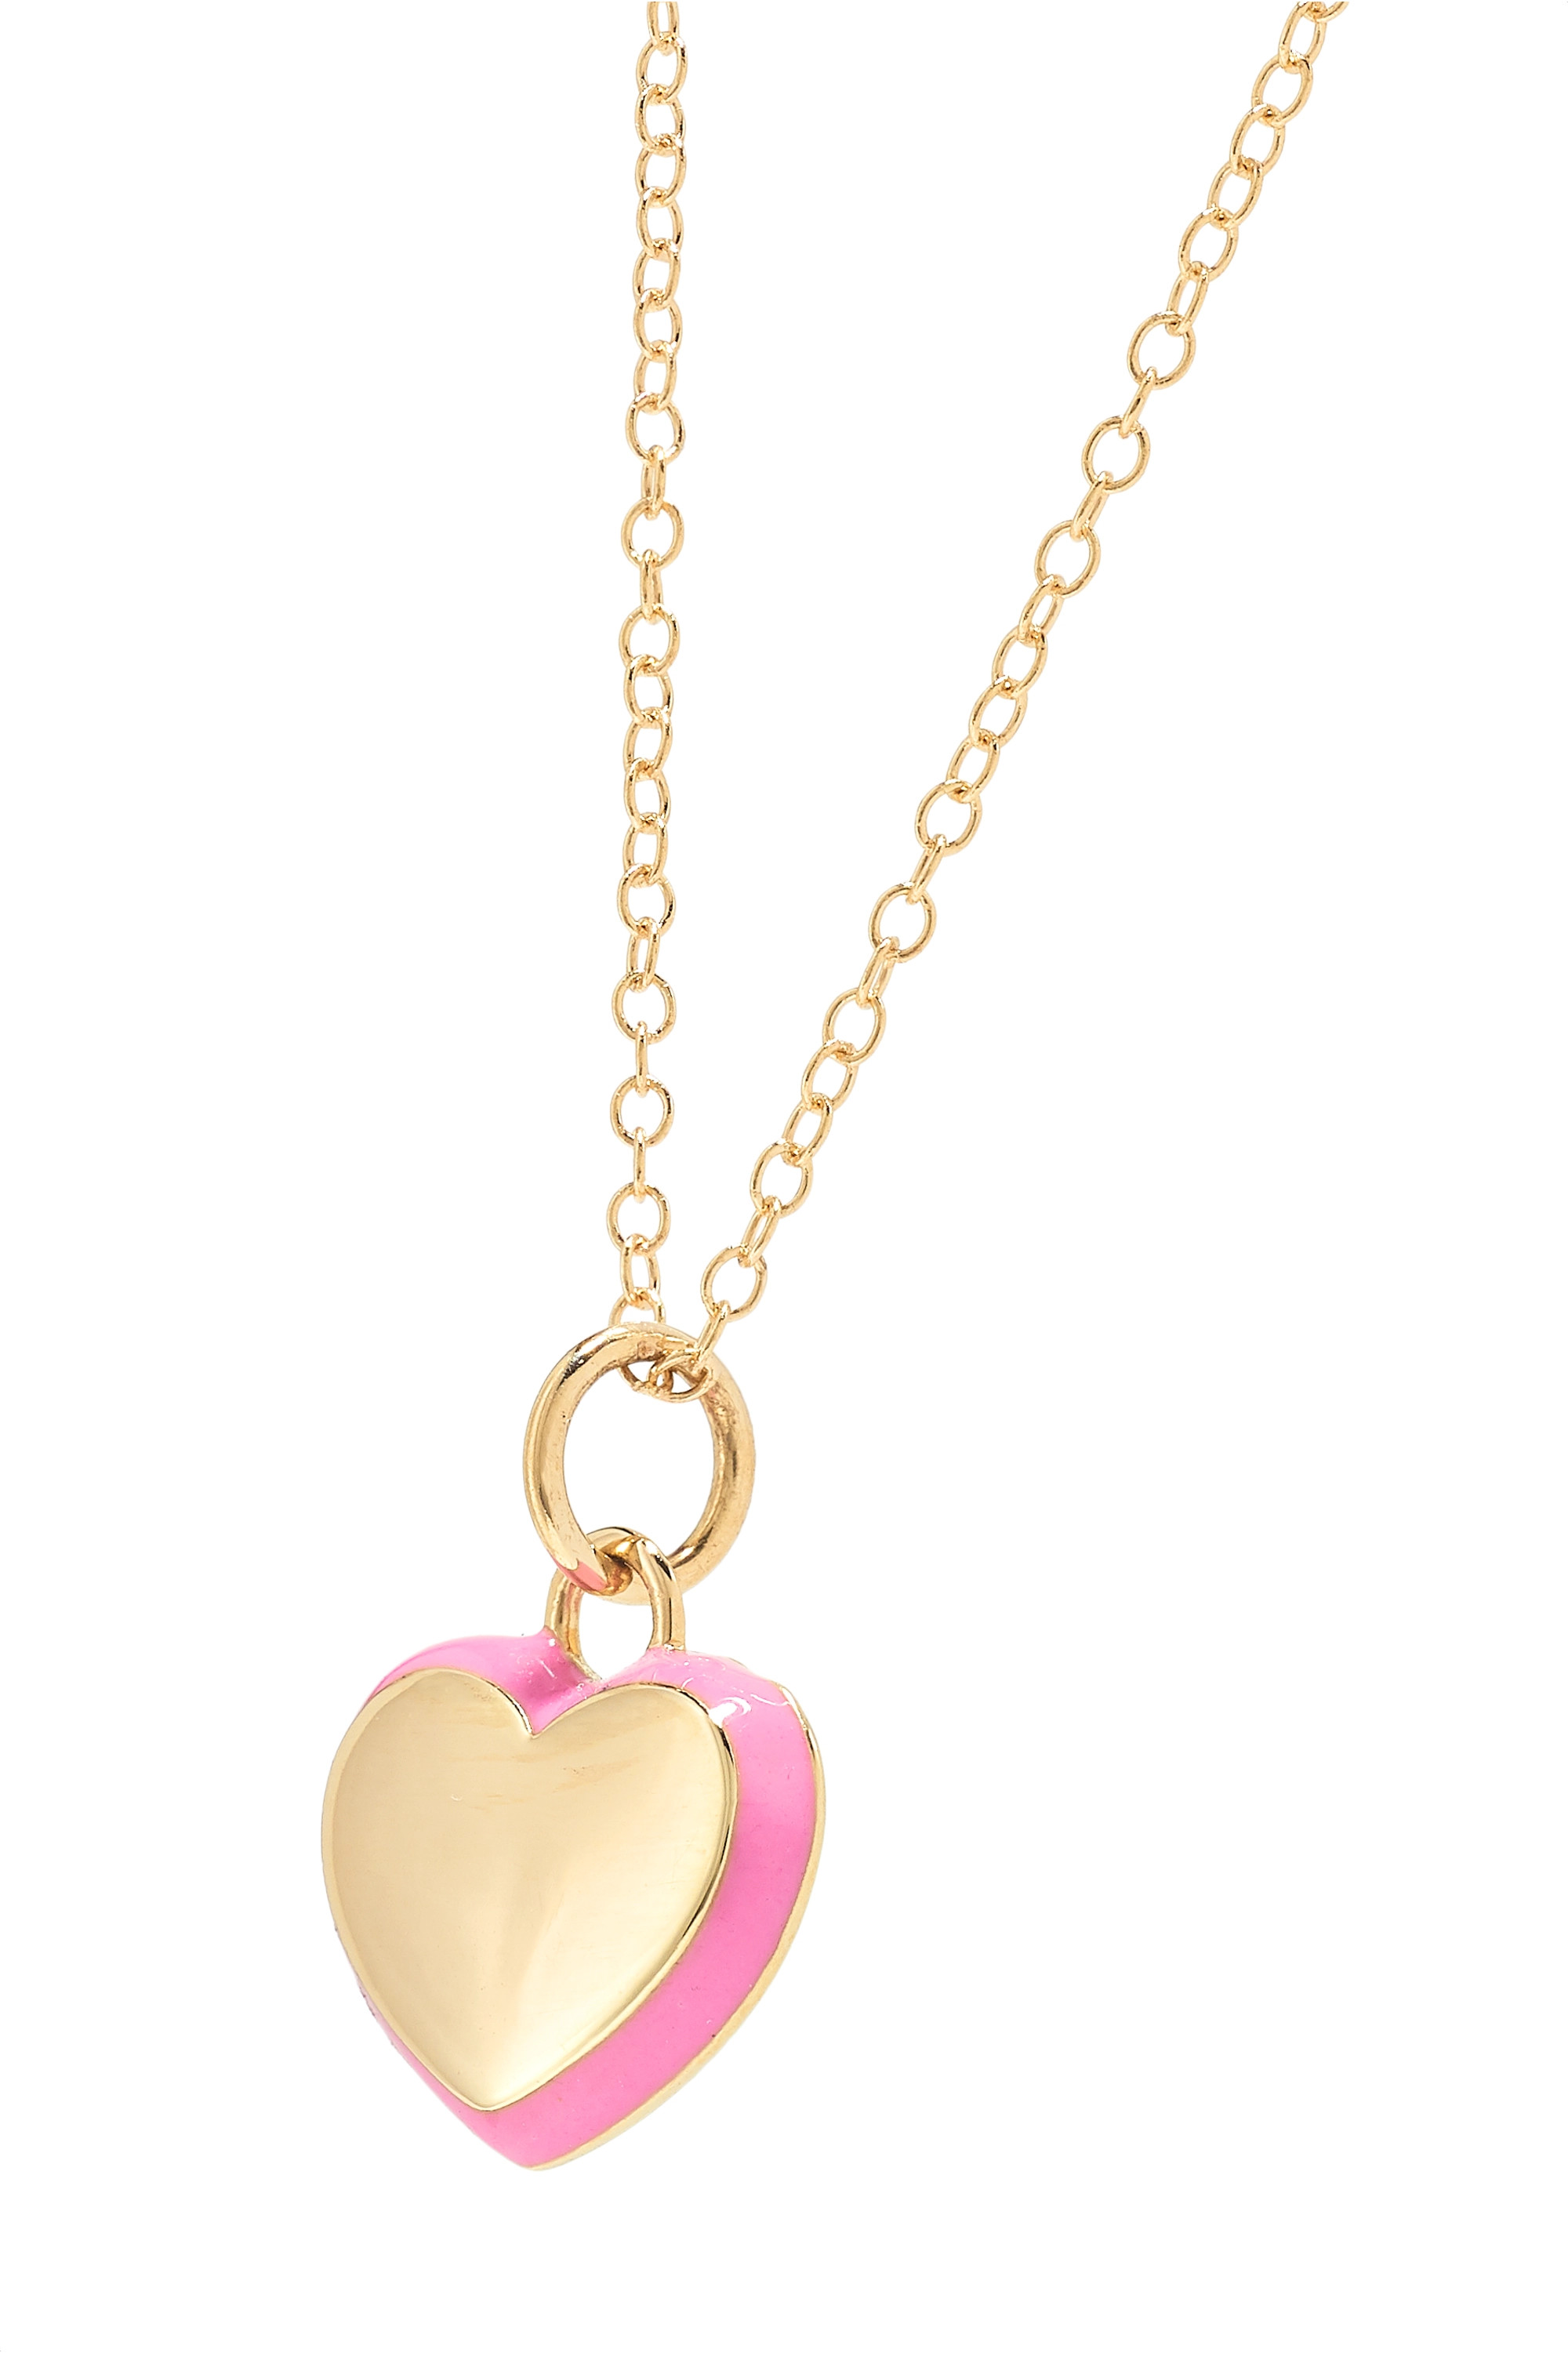 Gold Puffy Heart 14-karat And Enamel Necklace | Alison Lou